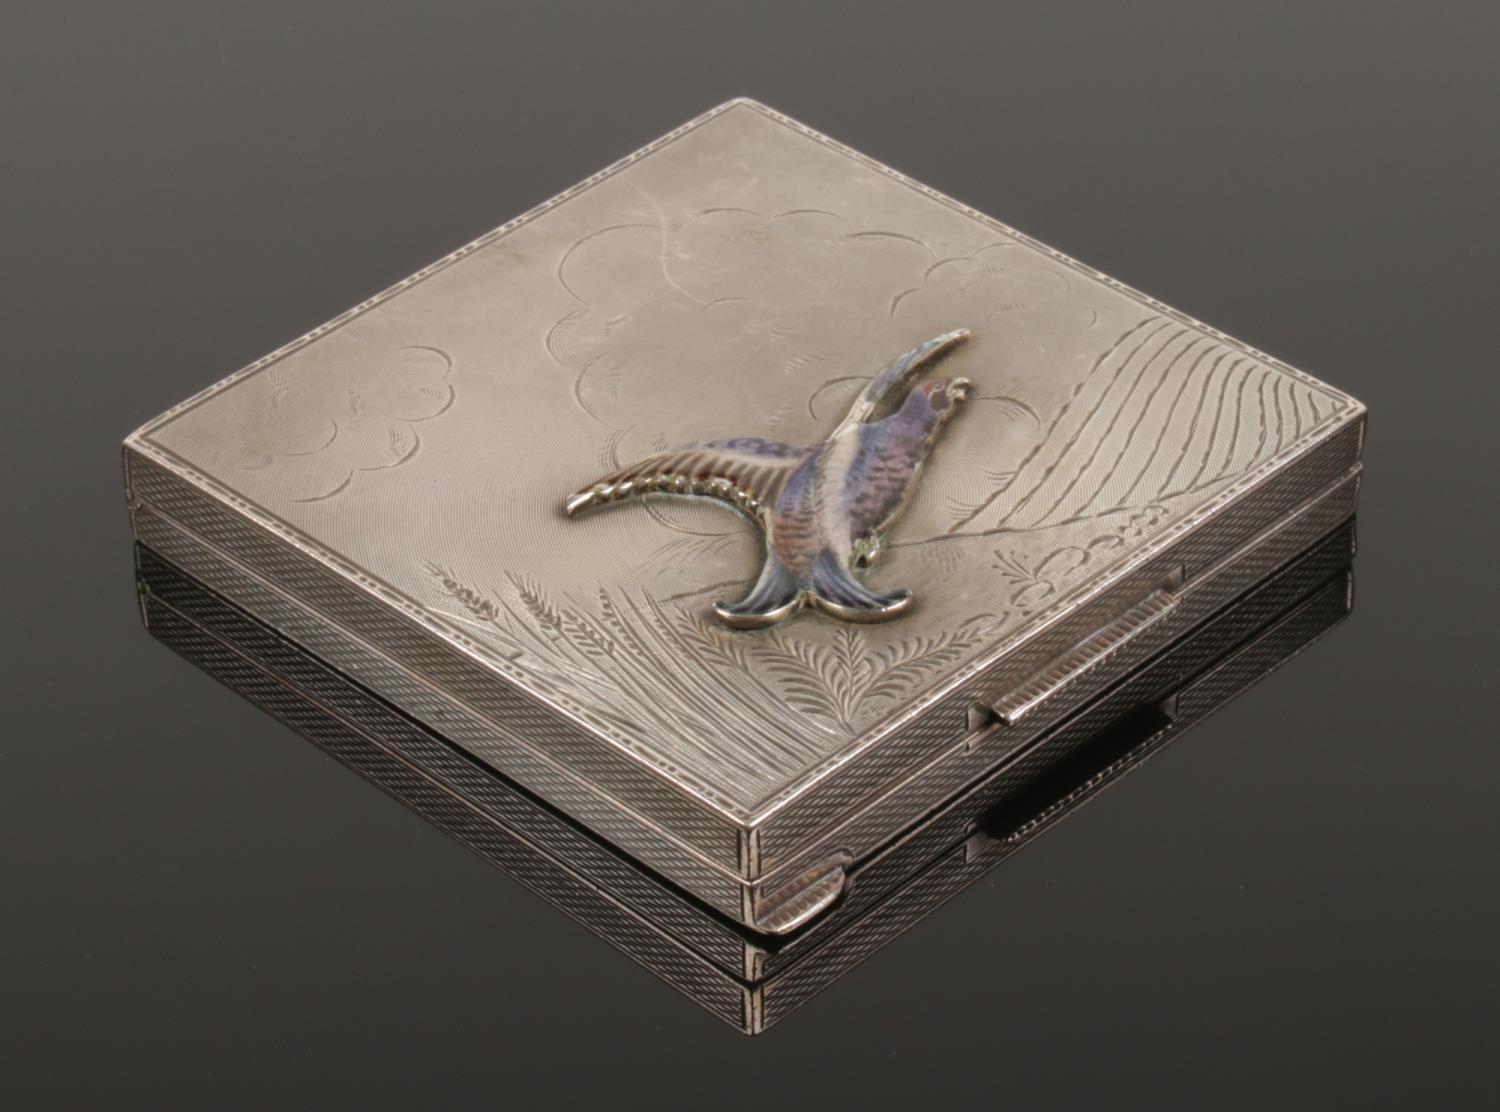 A George VI silver powder compact. With engraved decoration and applied enamel grouse. Assayed